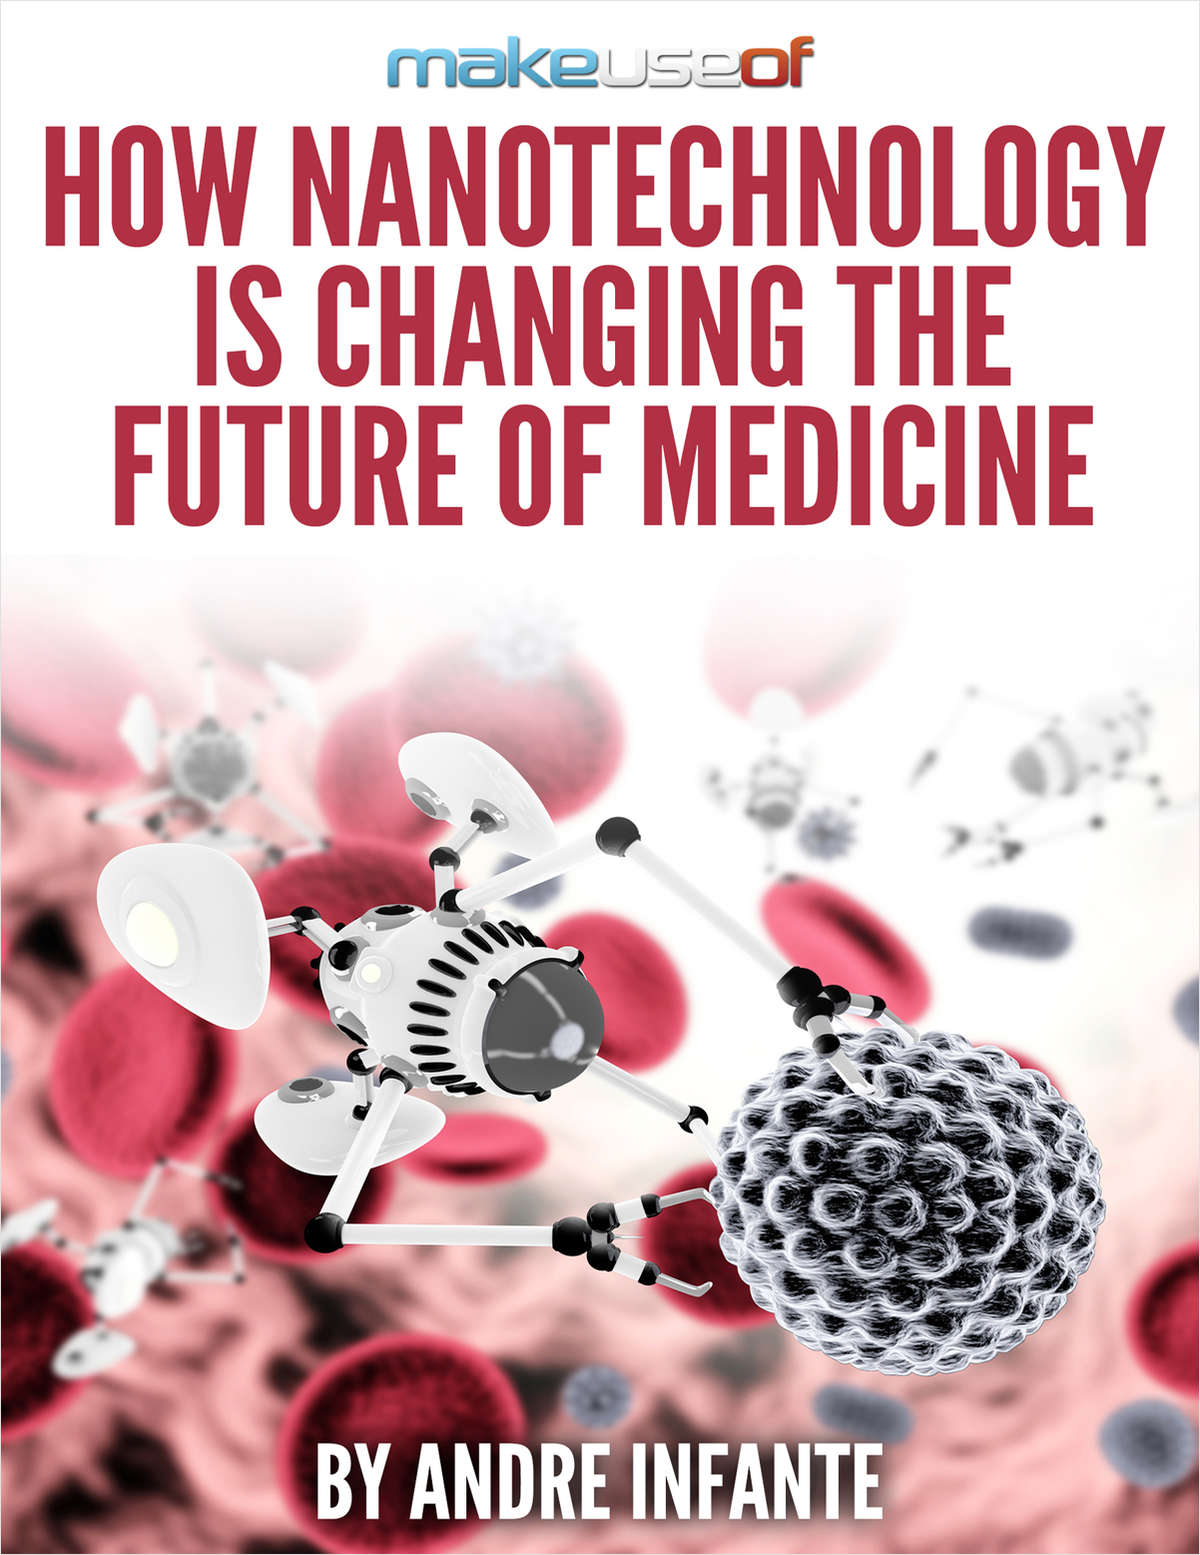 How Nanotechnology is Changing the Future of Medicine